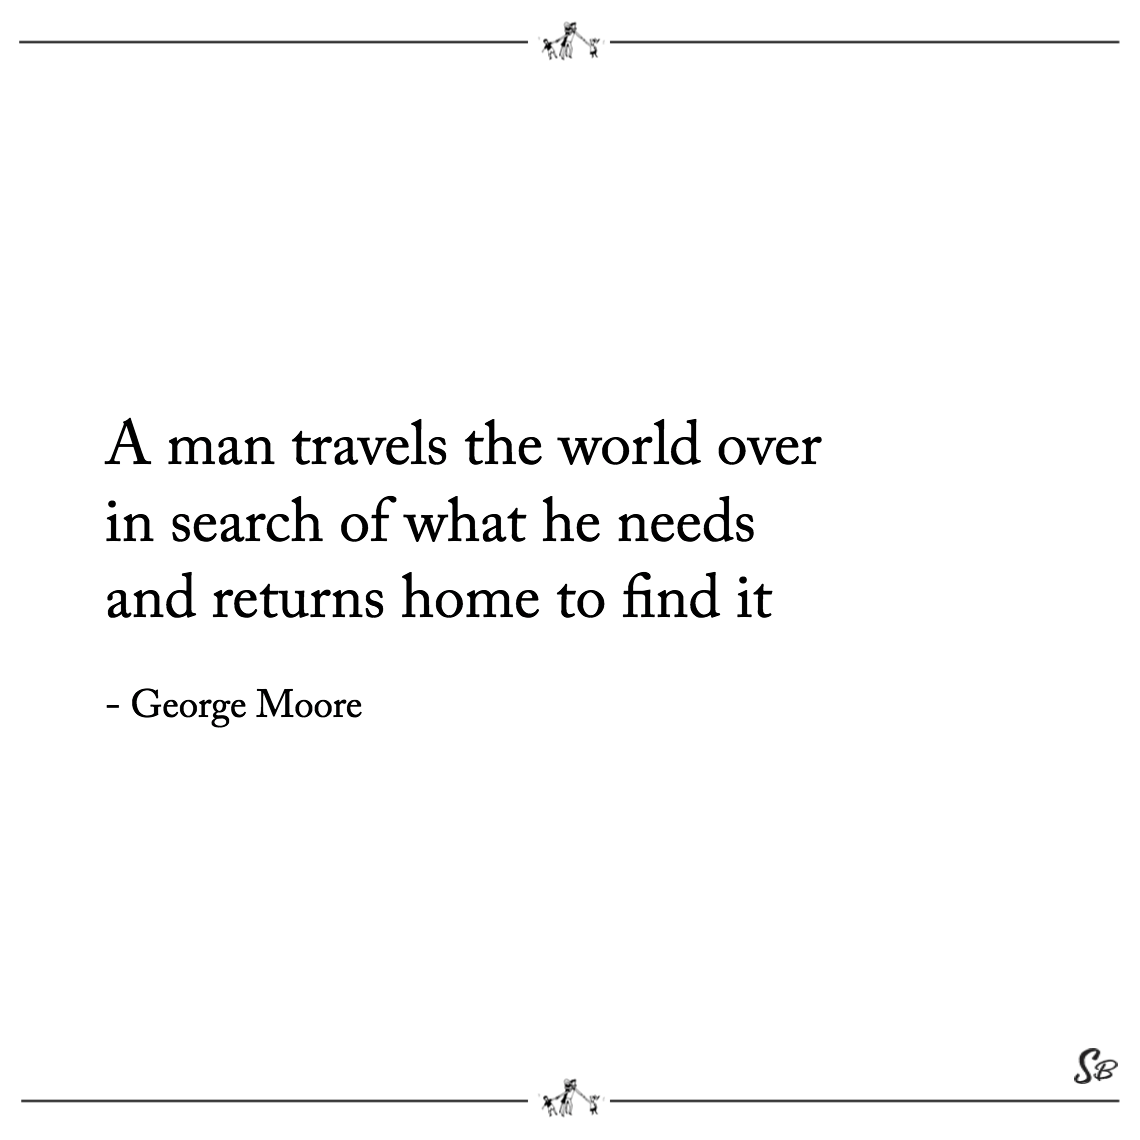 A man travels the world over in search of what he needs and returns home to find it george moore